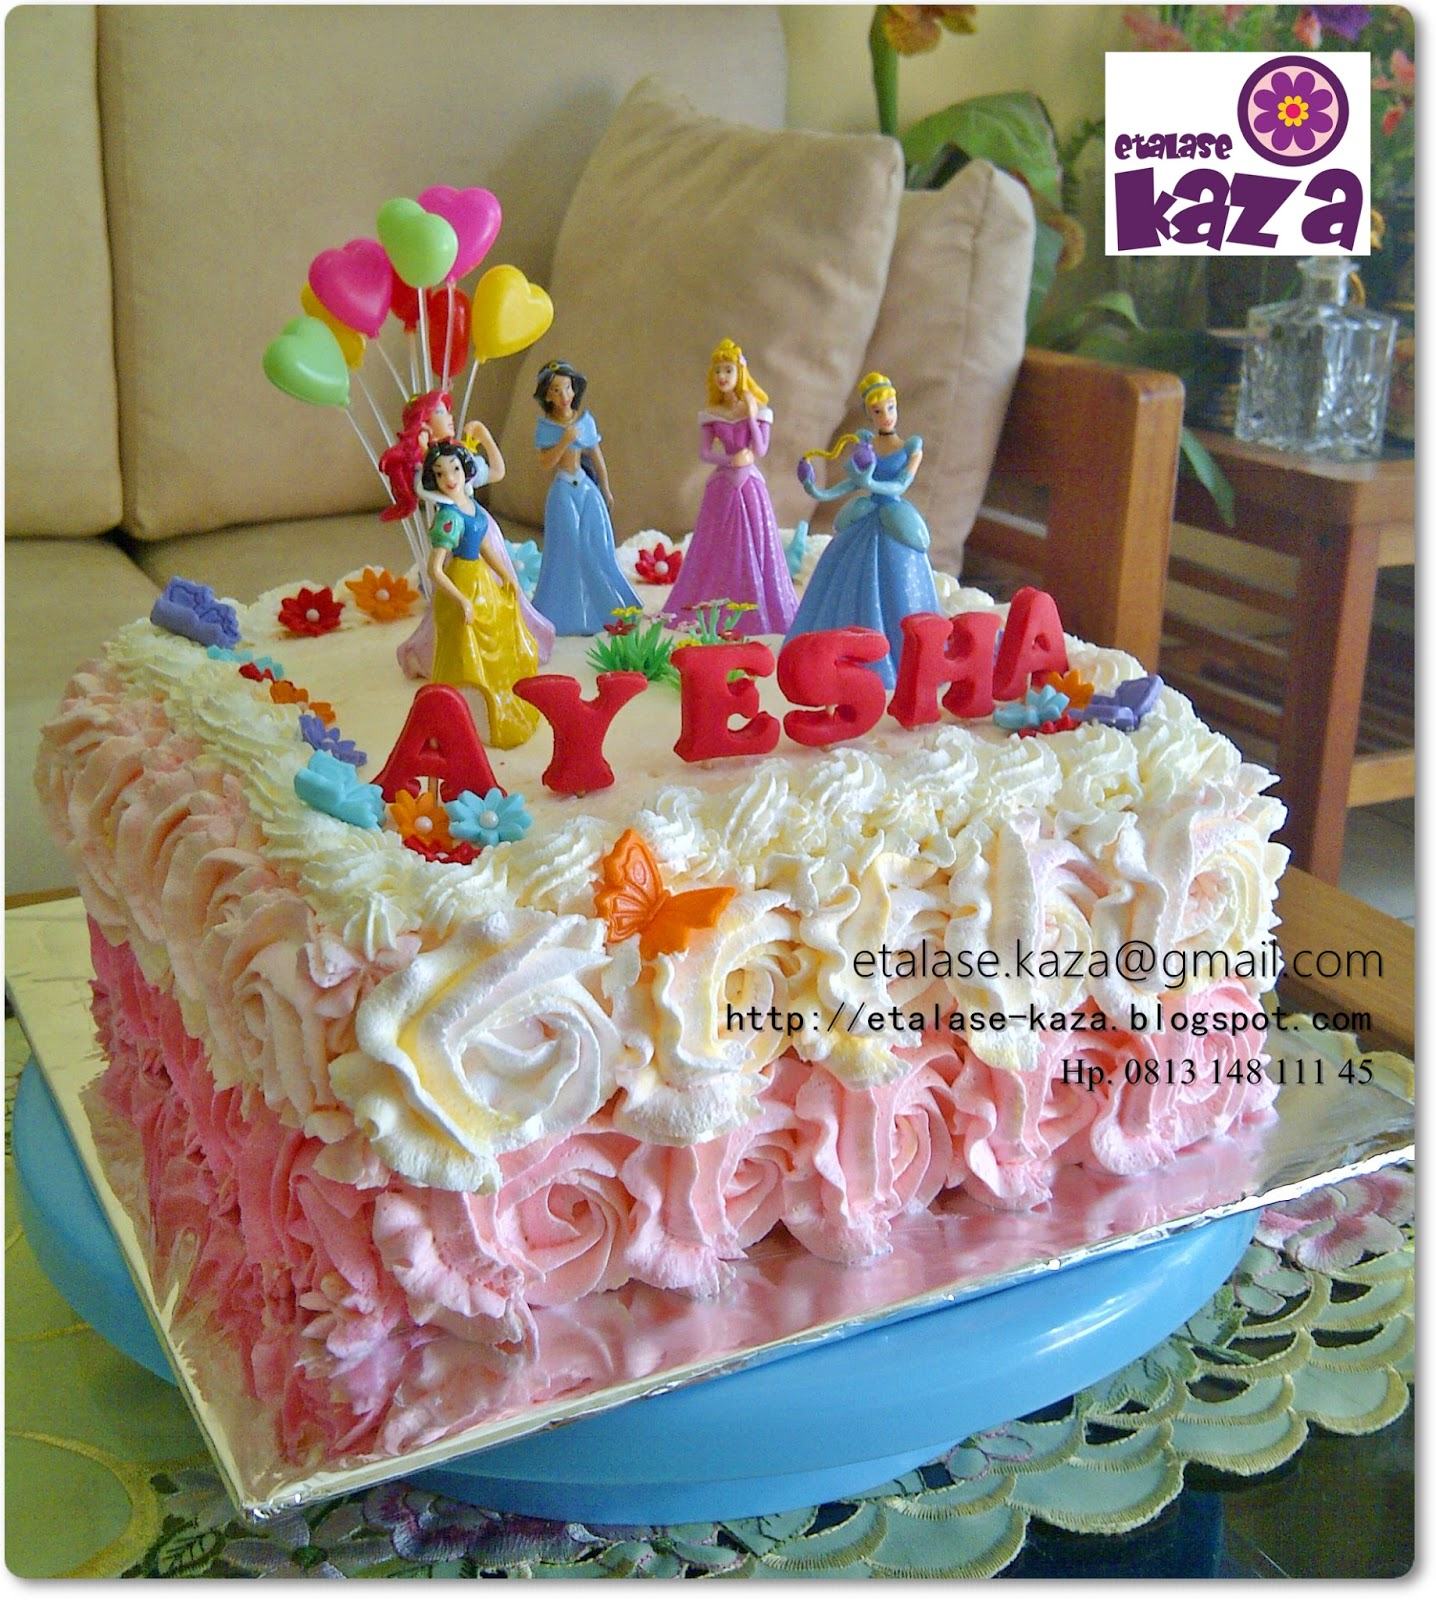 Cake Images With Name Ayesha : Cooking Wallpapers And Cake Ideas and Designs